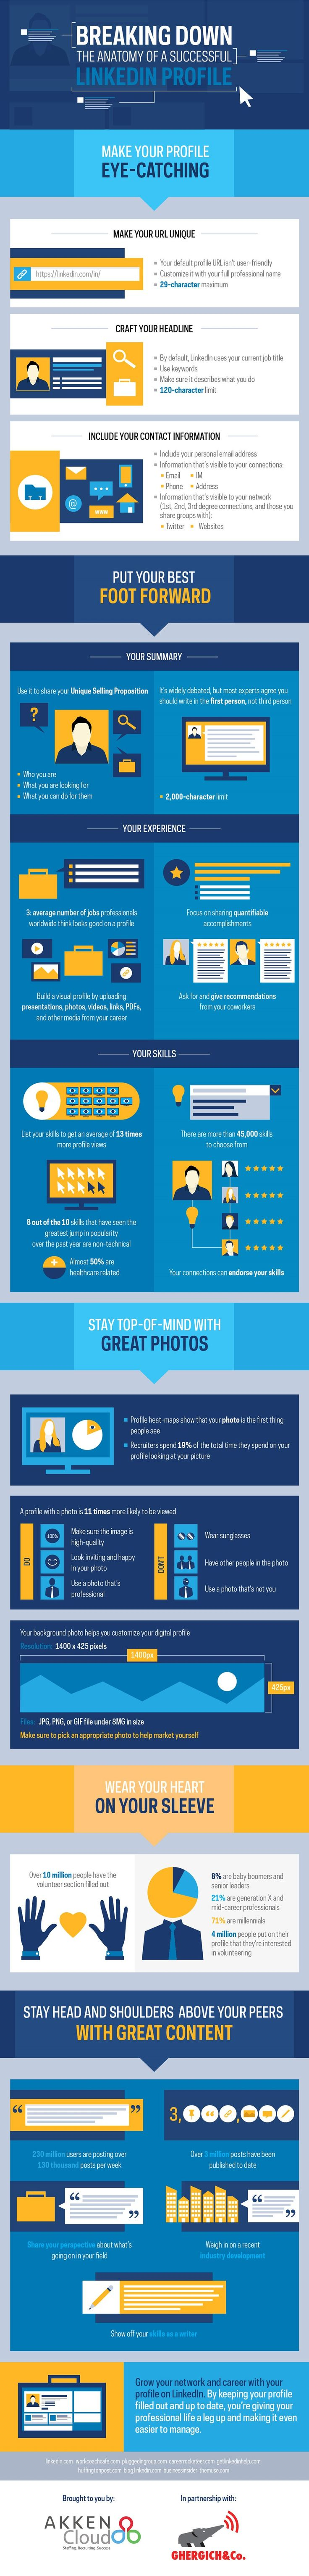 Career Management - To stand out amid the millions of LinkedIn users, you need a stellar profile that captures attention and starts conversations. This infographic can help you get started on creating that ...